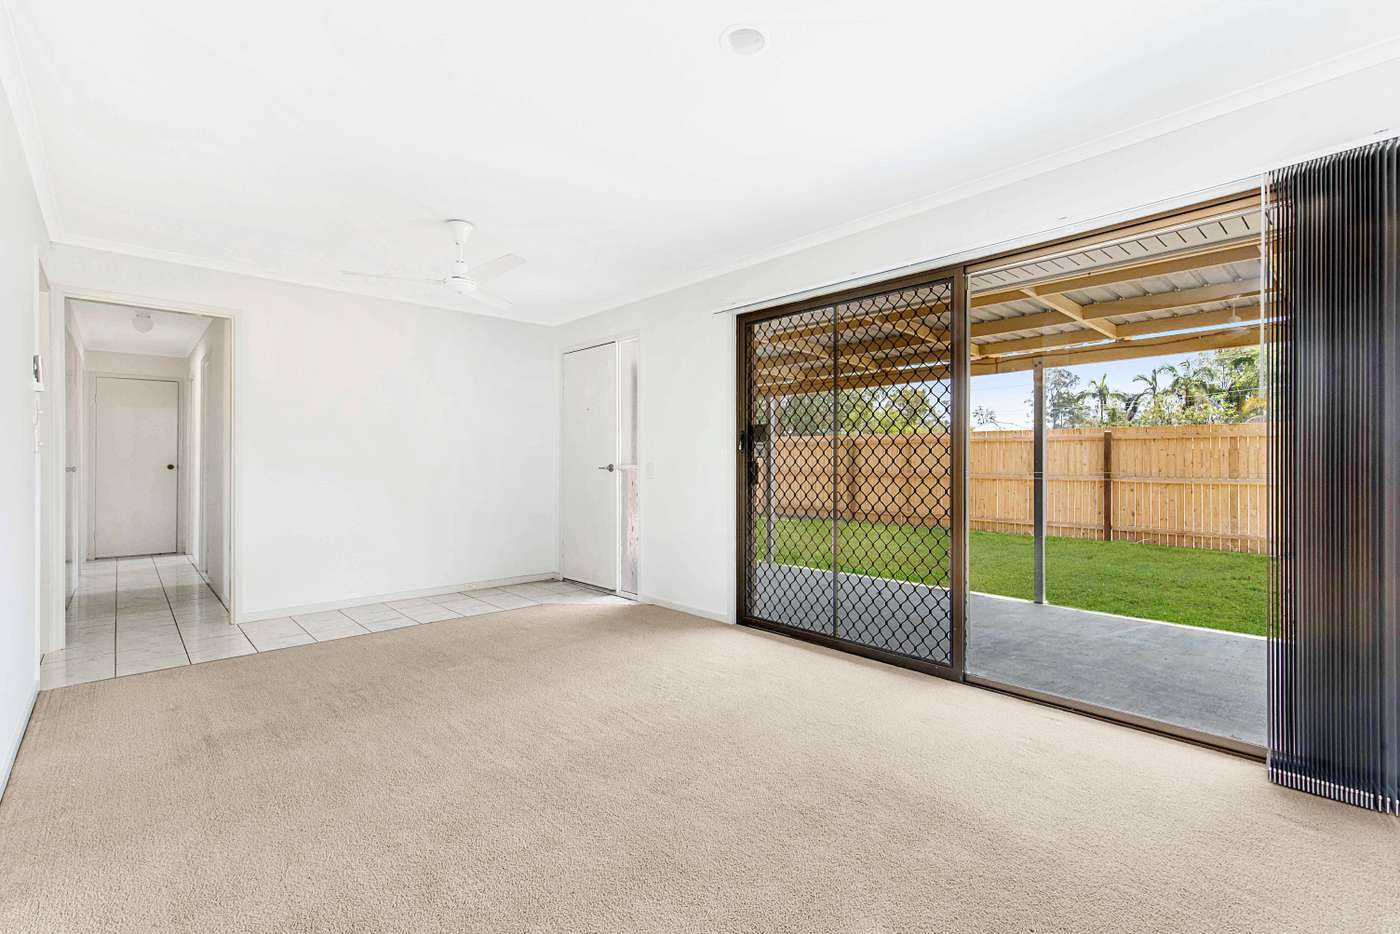 Sixth view of Homely house listing, 55 Bluegum Drive, Marsden QLD 4132